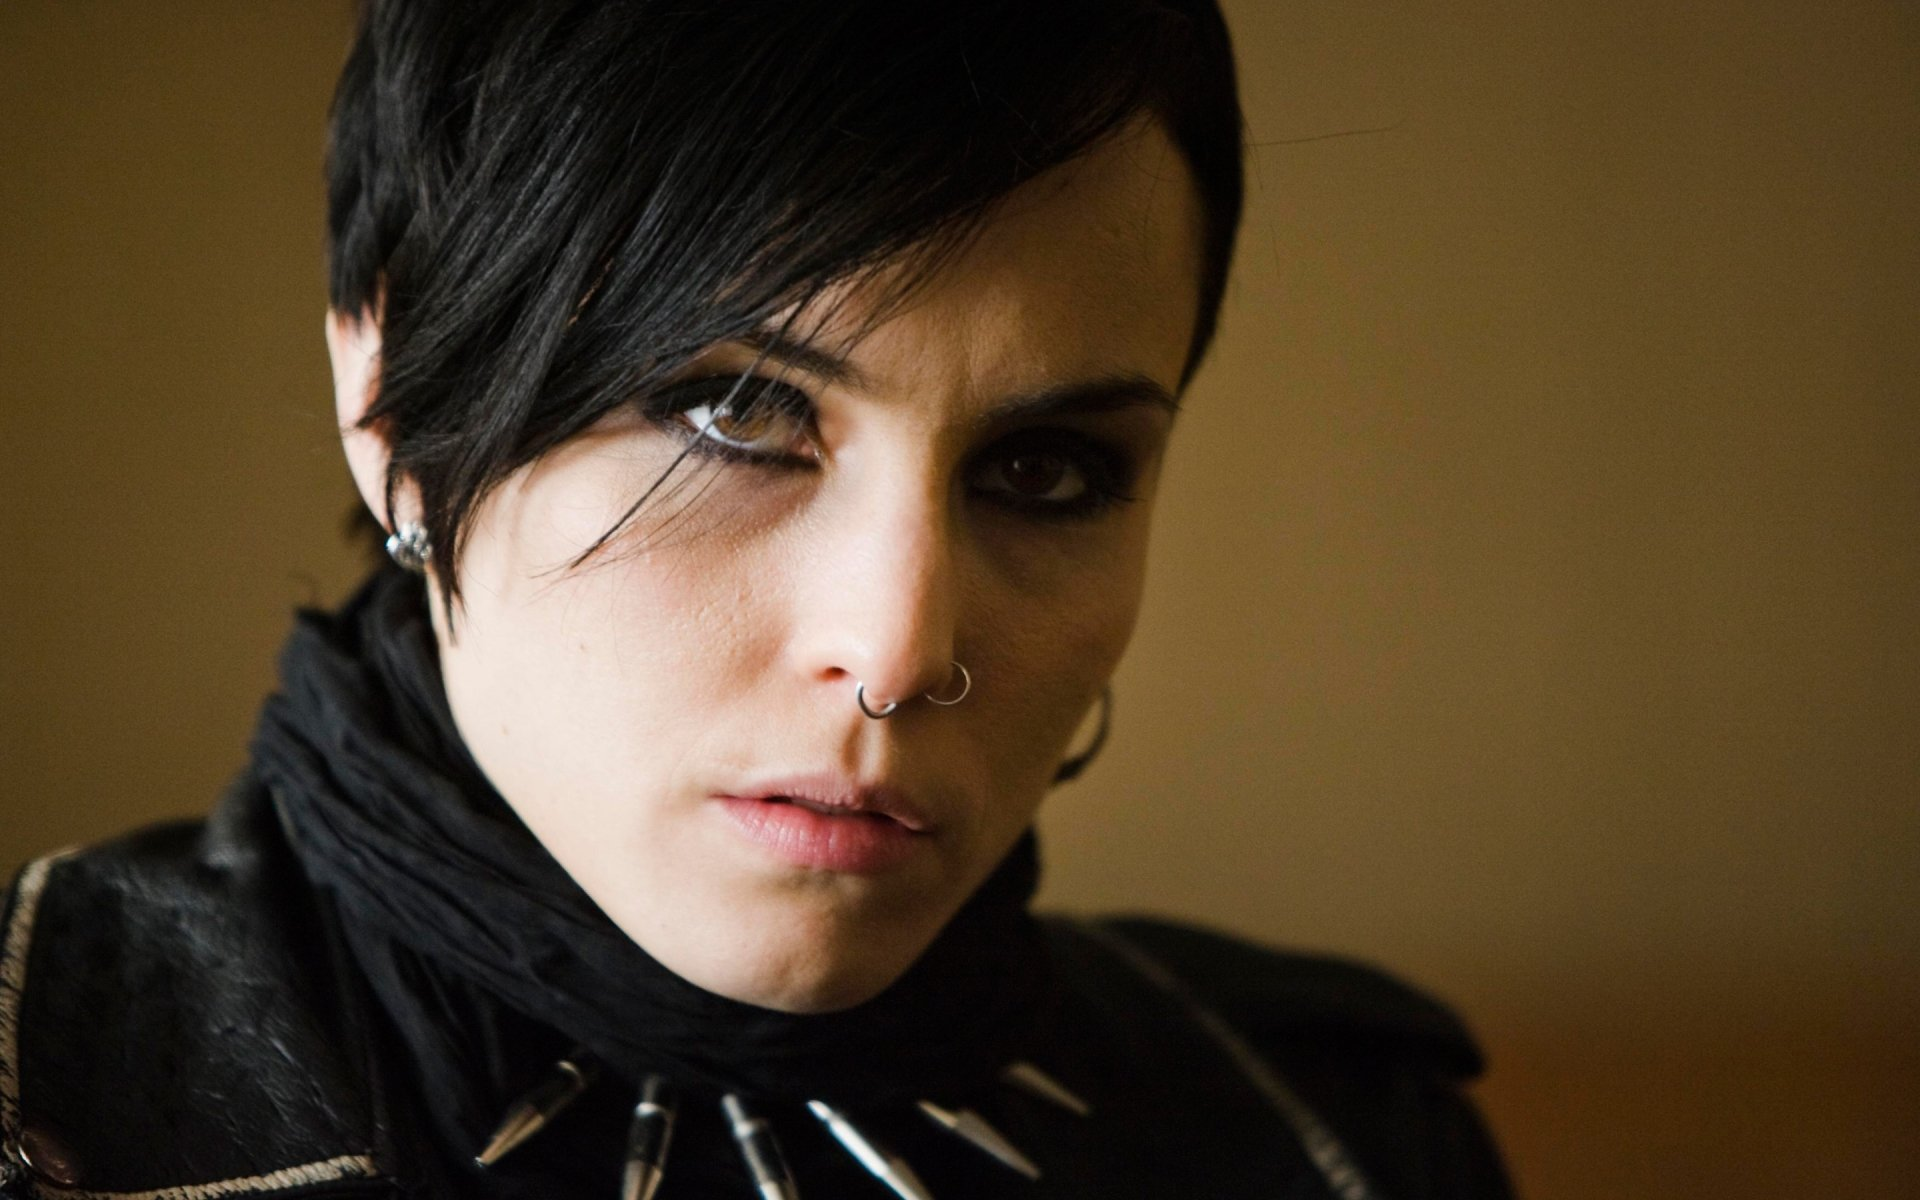 Girl With The Dragon Tattoo Iphone Wallpaper The Girl With The Dragon Tattoo Hd Wallpaper Background